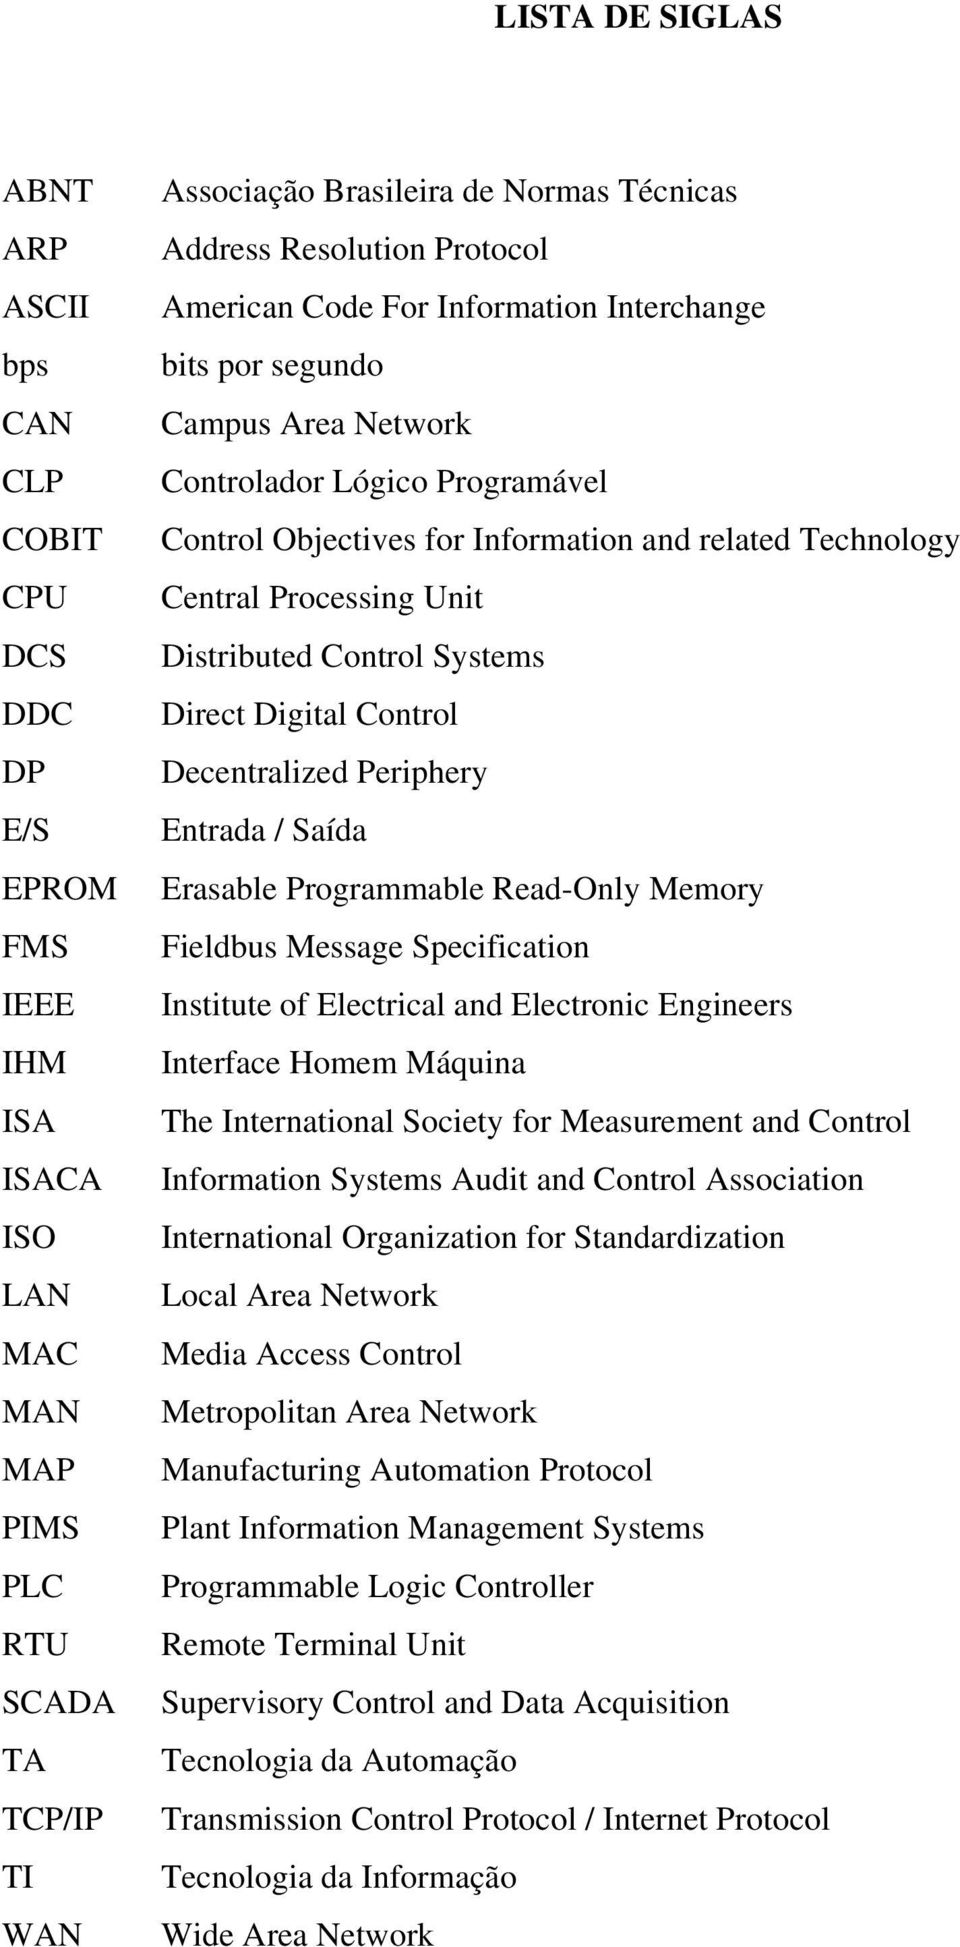 Central Processing Unit Distributed Control Systems Direct Digital Control Decentralized Periphery Entrada / Saída Erasable Programmable Read-Only Memory Fieldbus Message Specification Institute of